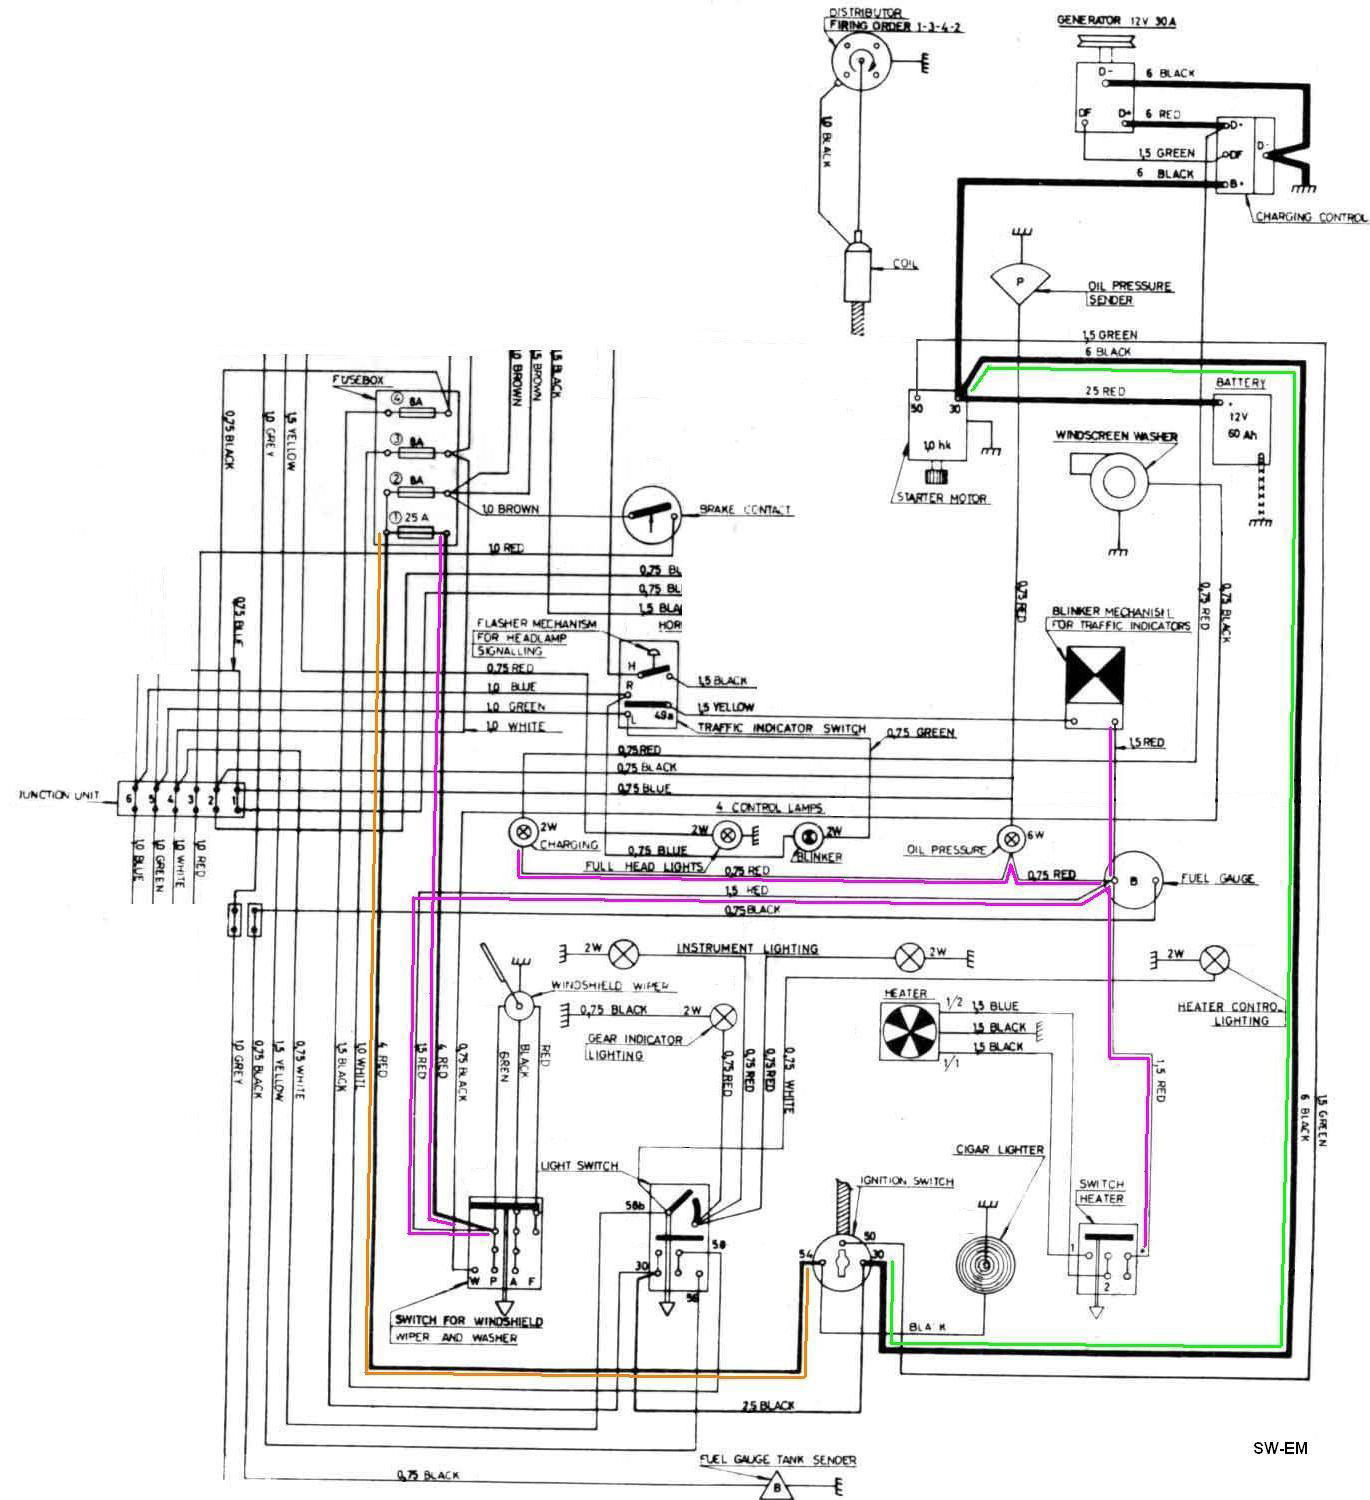 IGN SW wiring diag 122 markup 1800 ignition wiring swedish vs british design volvo penta industrial engine wiring diagram at soozxer.org